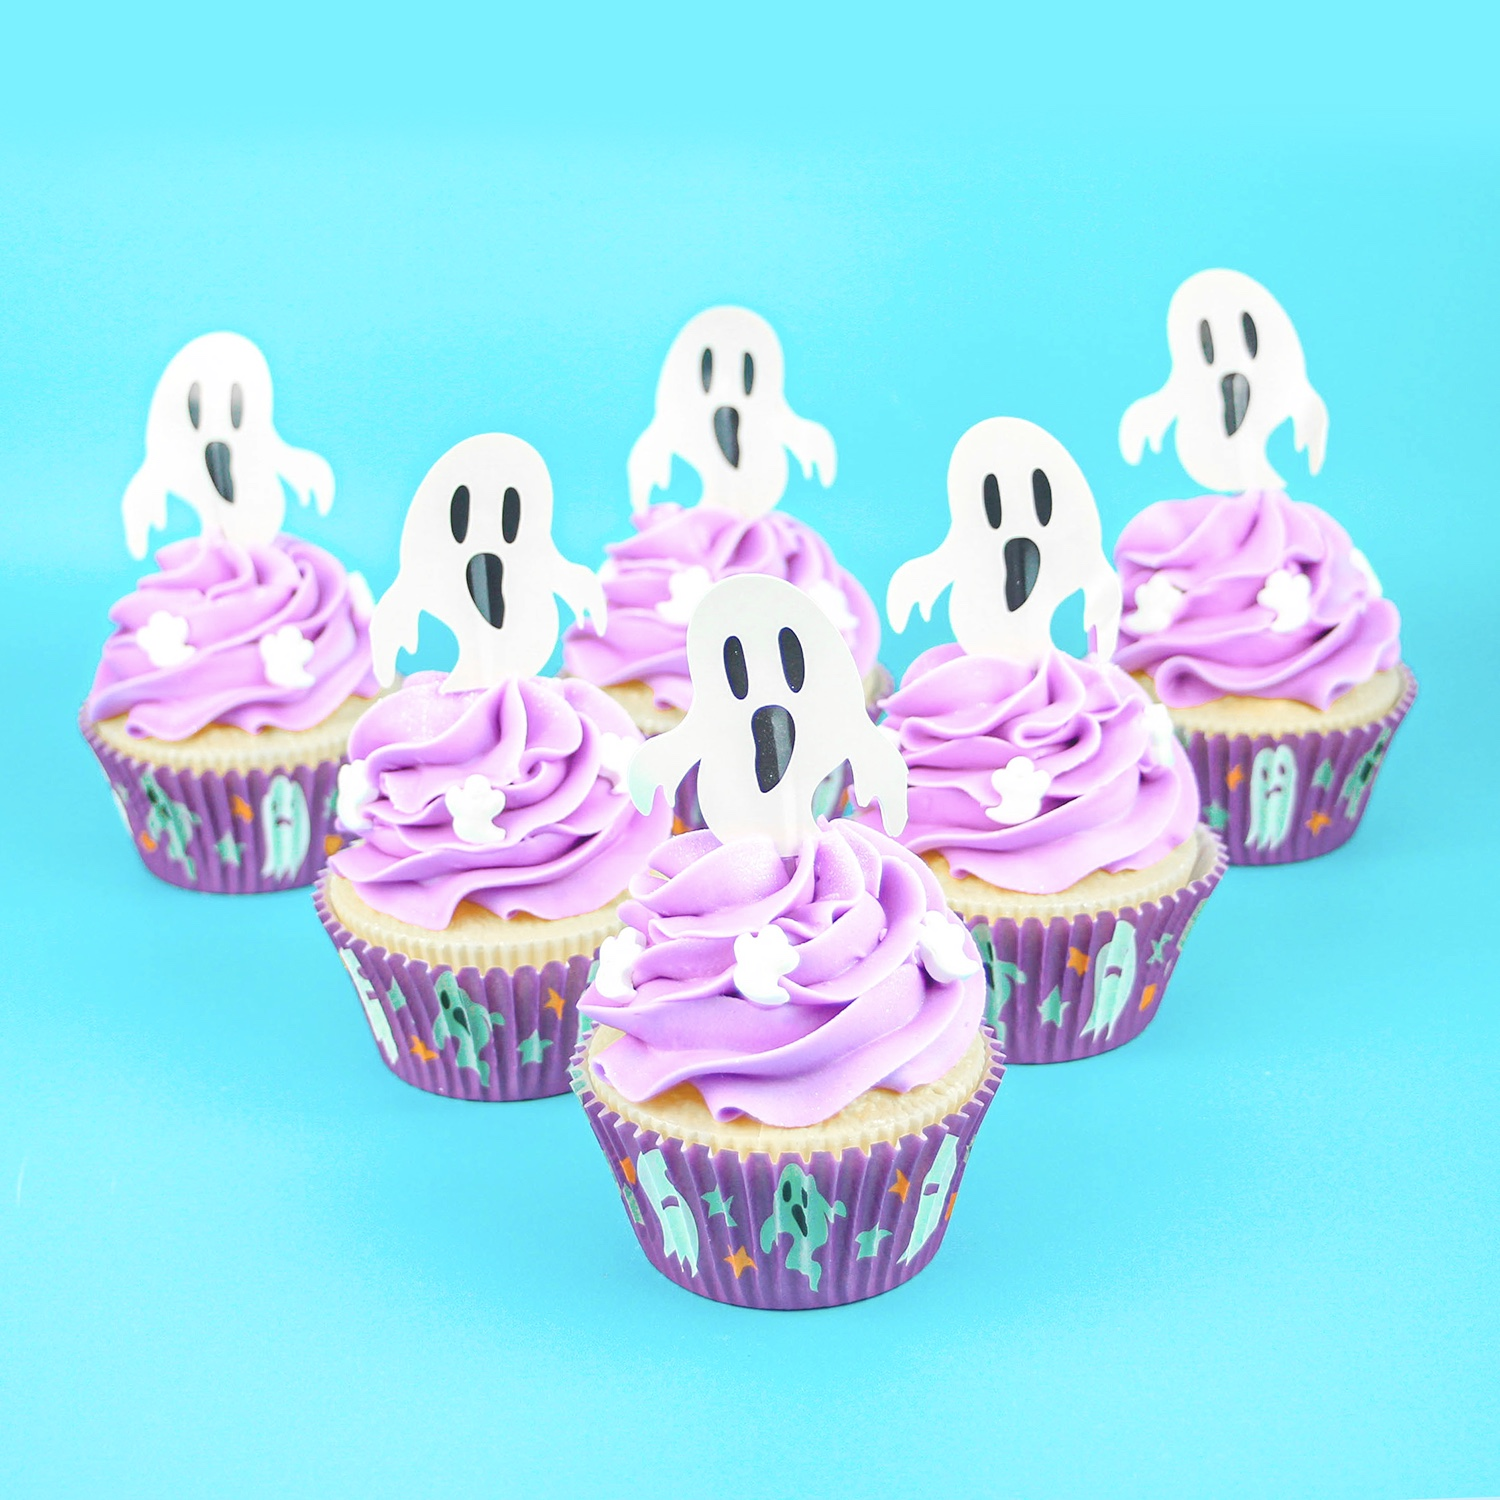 Purple Ghost Cupcakes